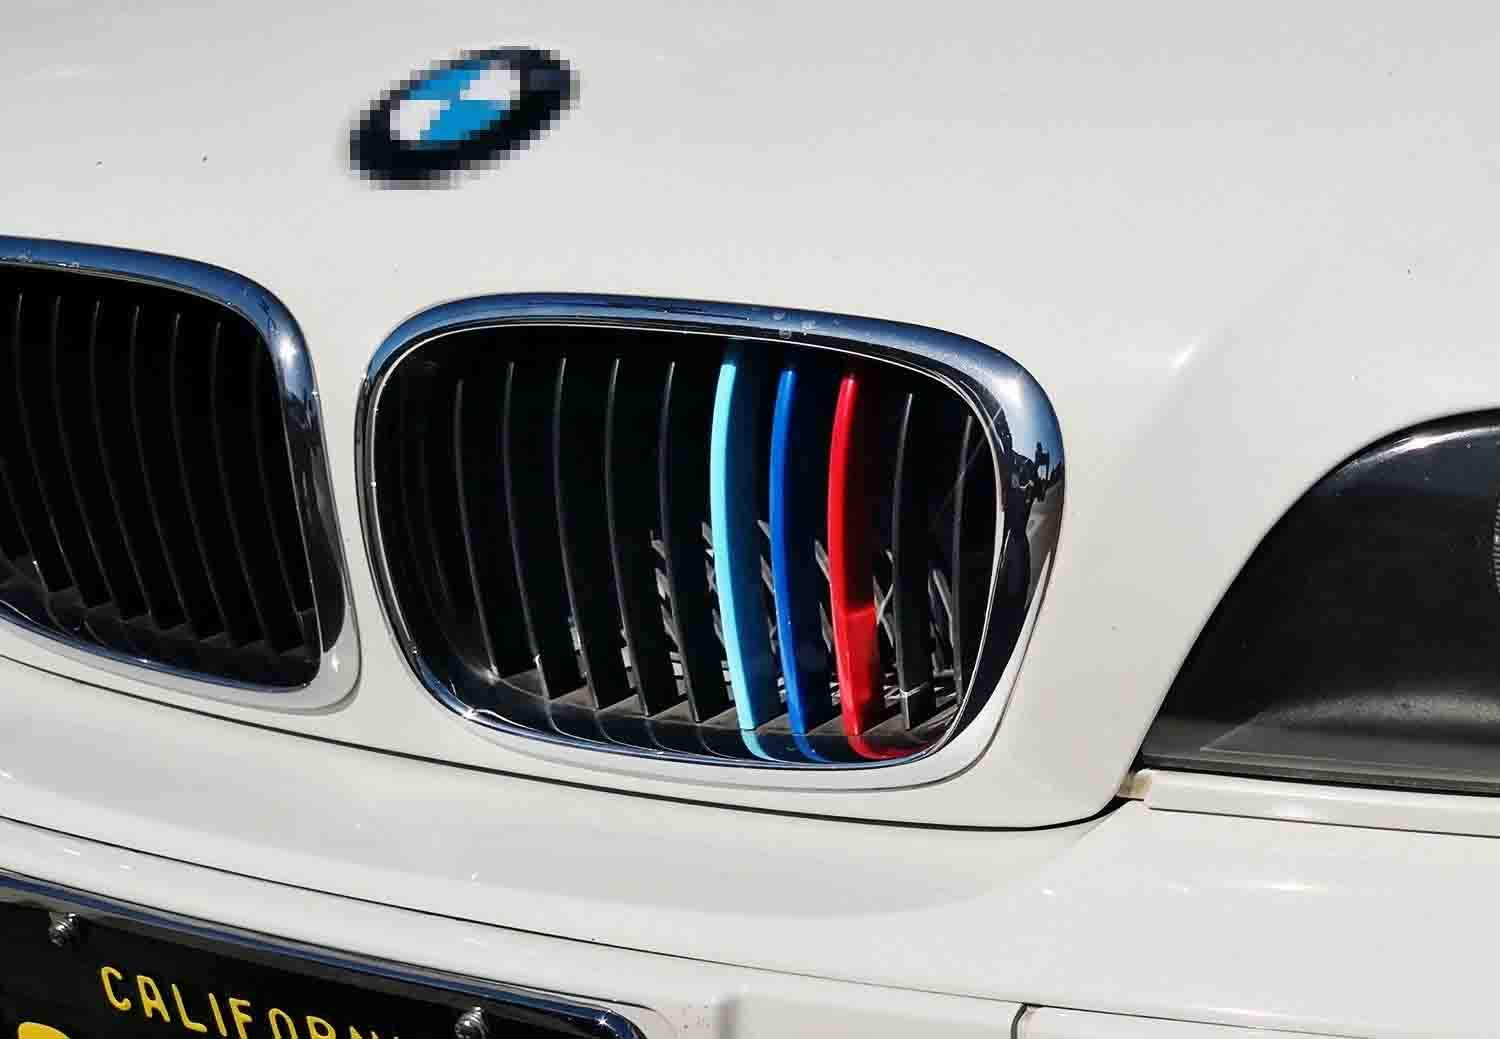 iJDMTOY Exact Fit//////M-Colored Grille Insert Trims Compatible With 2018-up G32 6 Series Gran Turismo 6GT w//9-Beam Grille ONLY